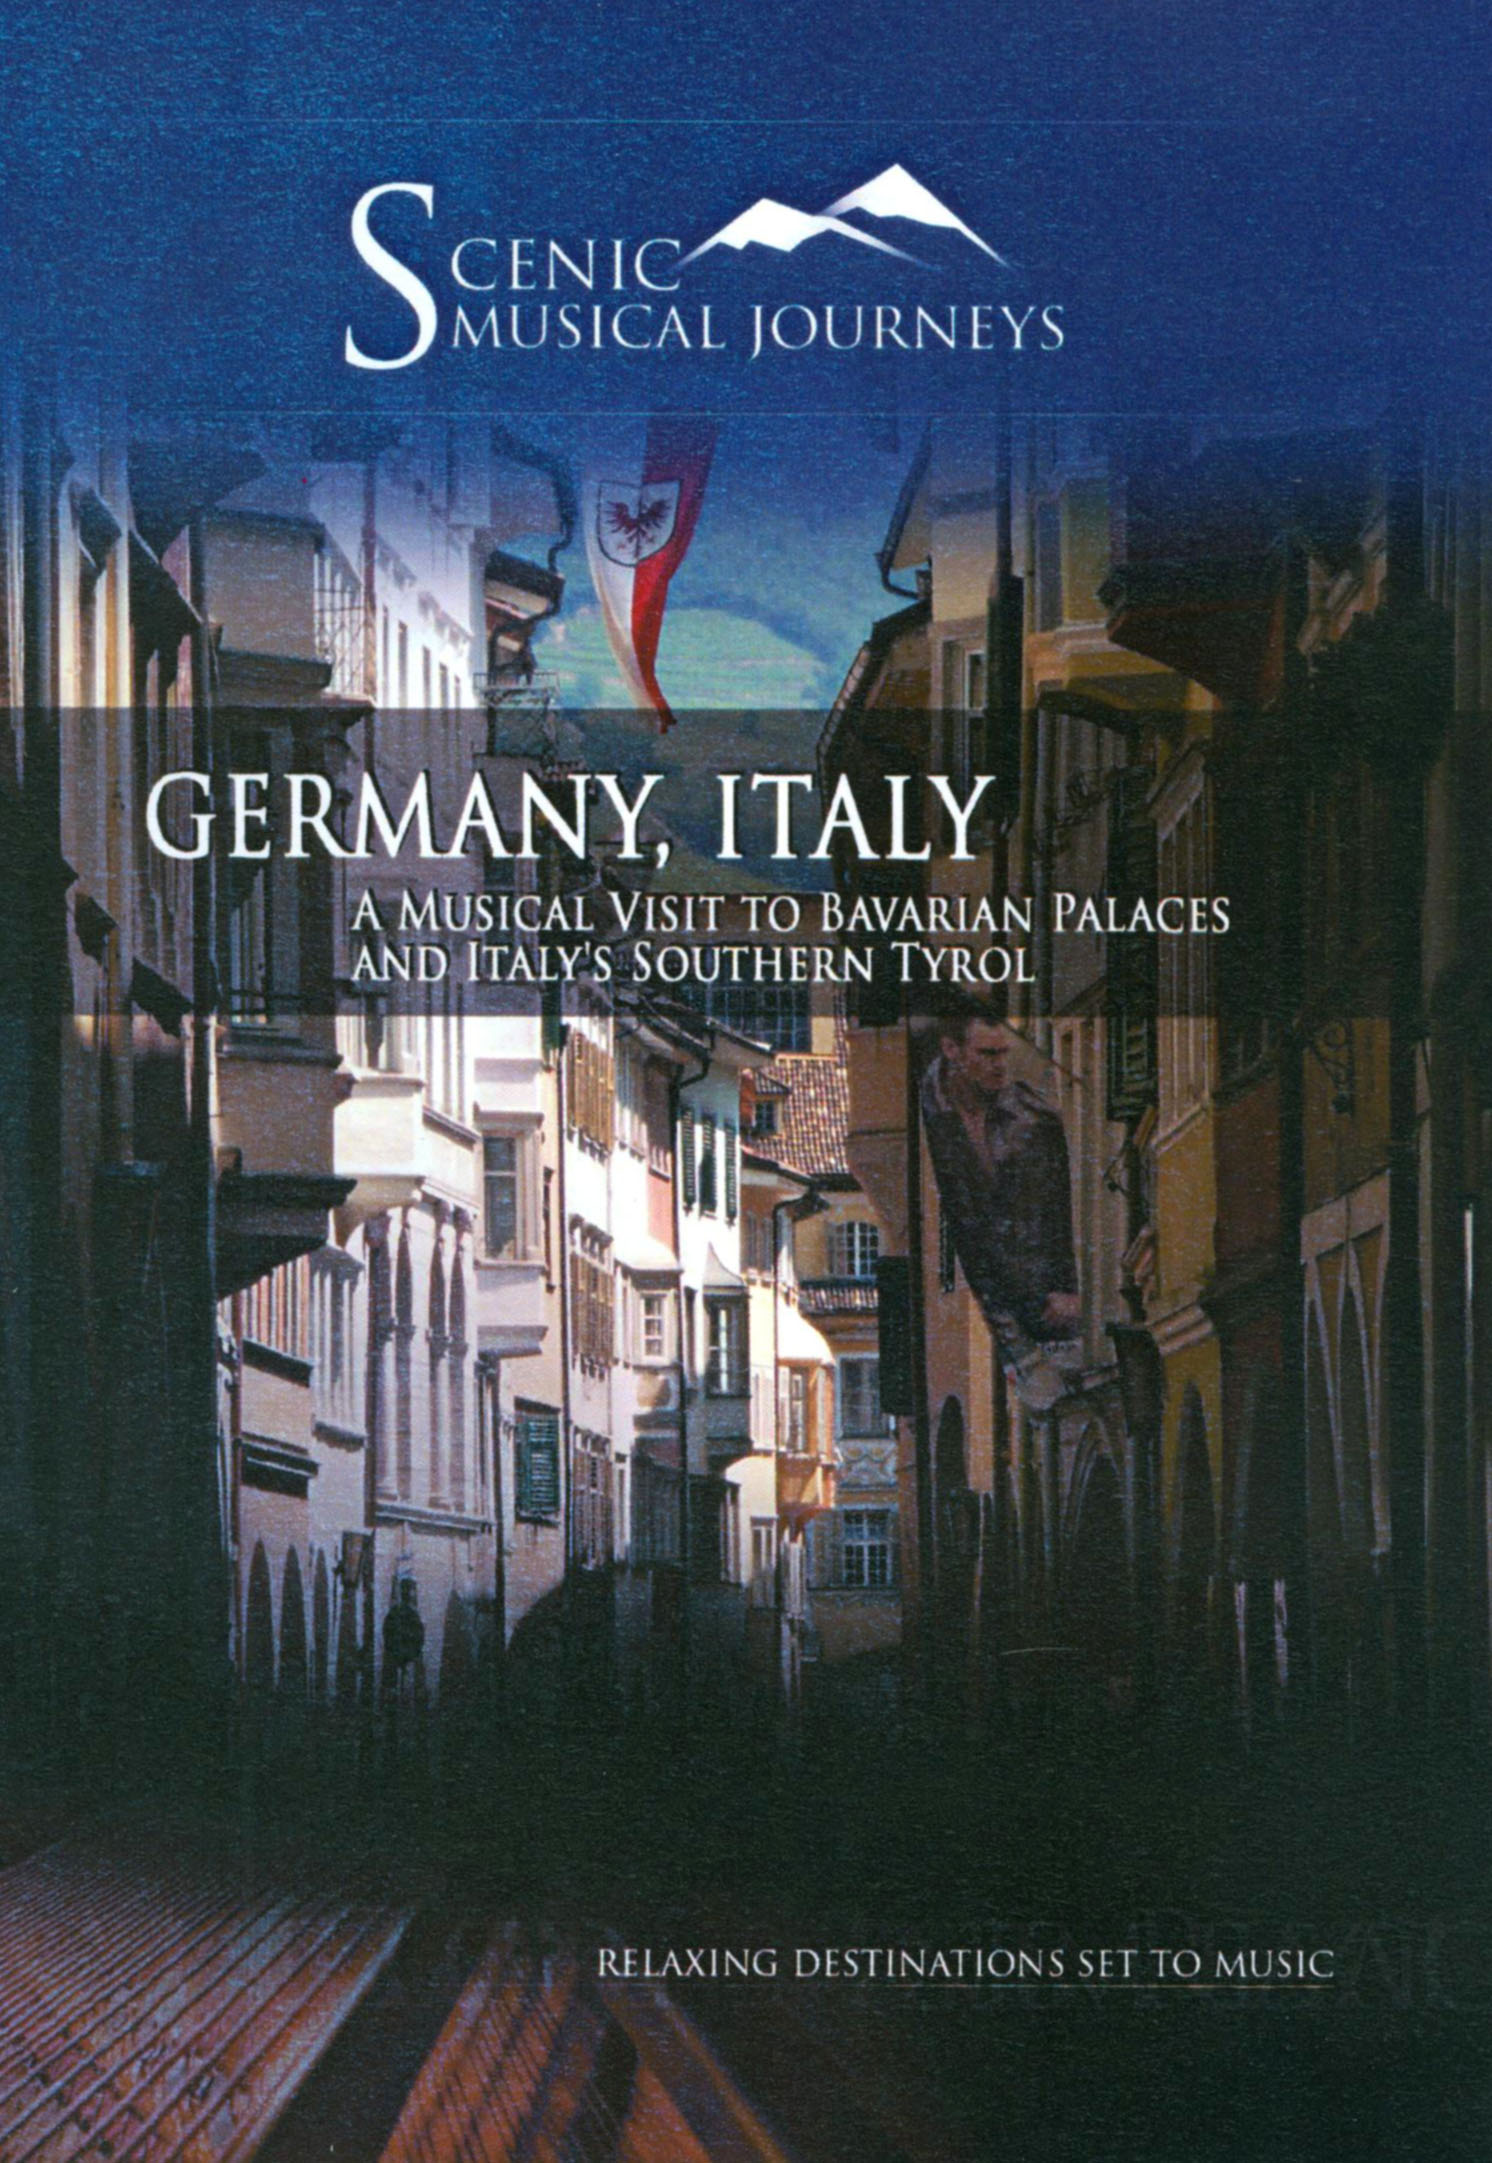 Scenic Musical Journeys: Germany, Italy - A Musical Tour of Siena, Pisa and Nervi